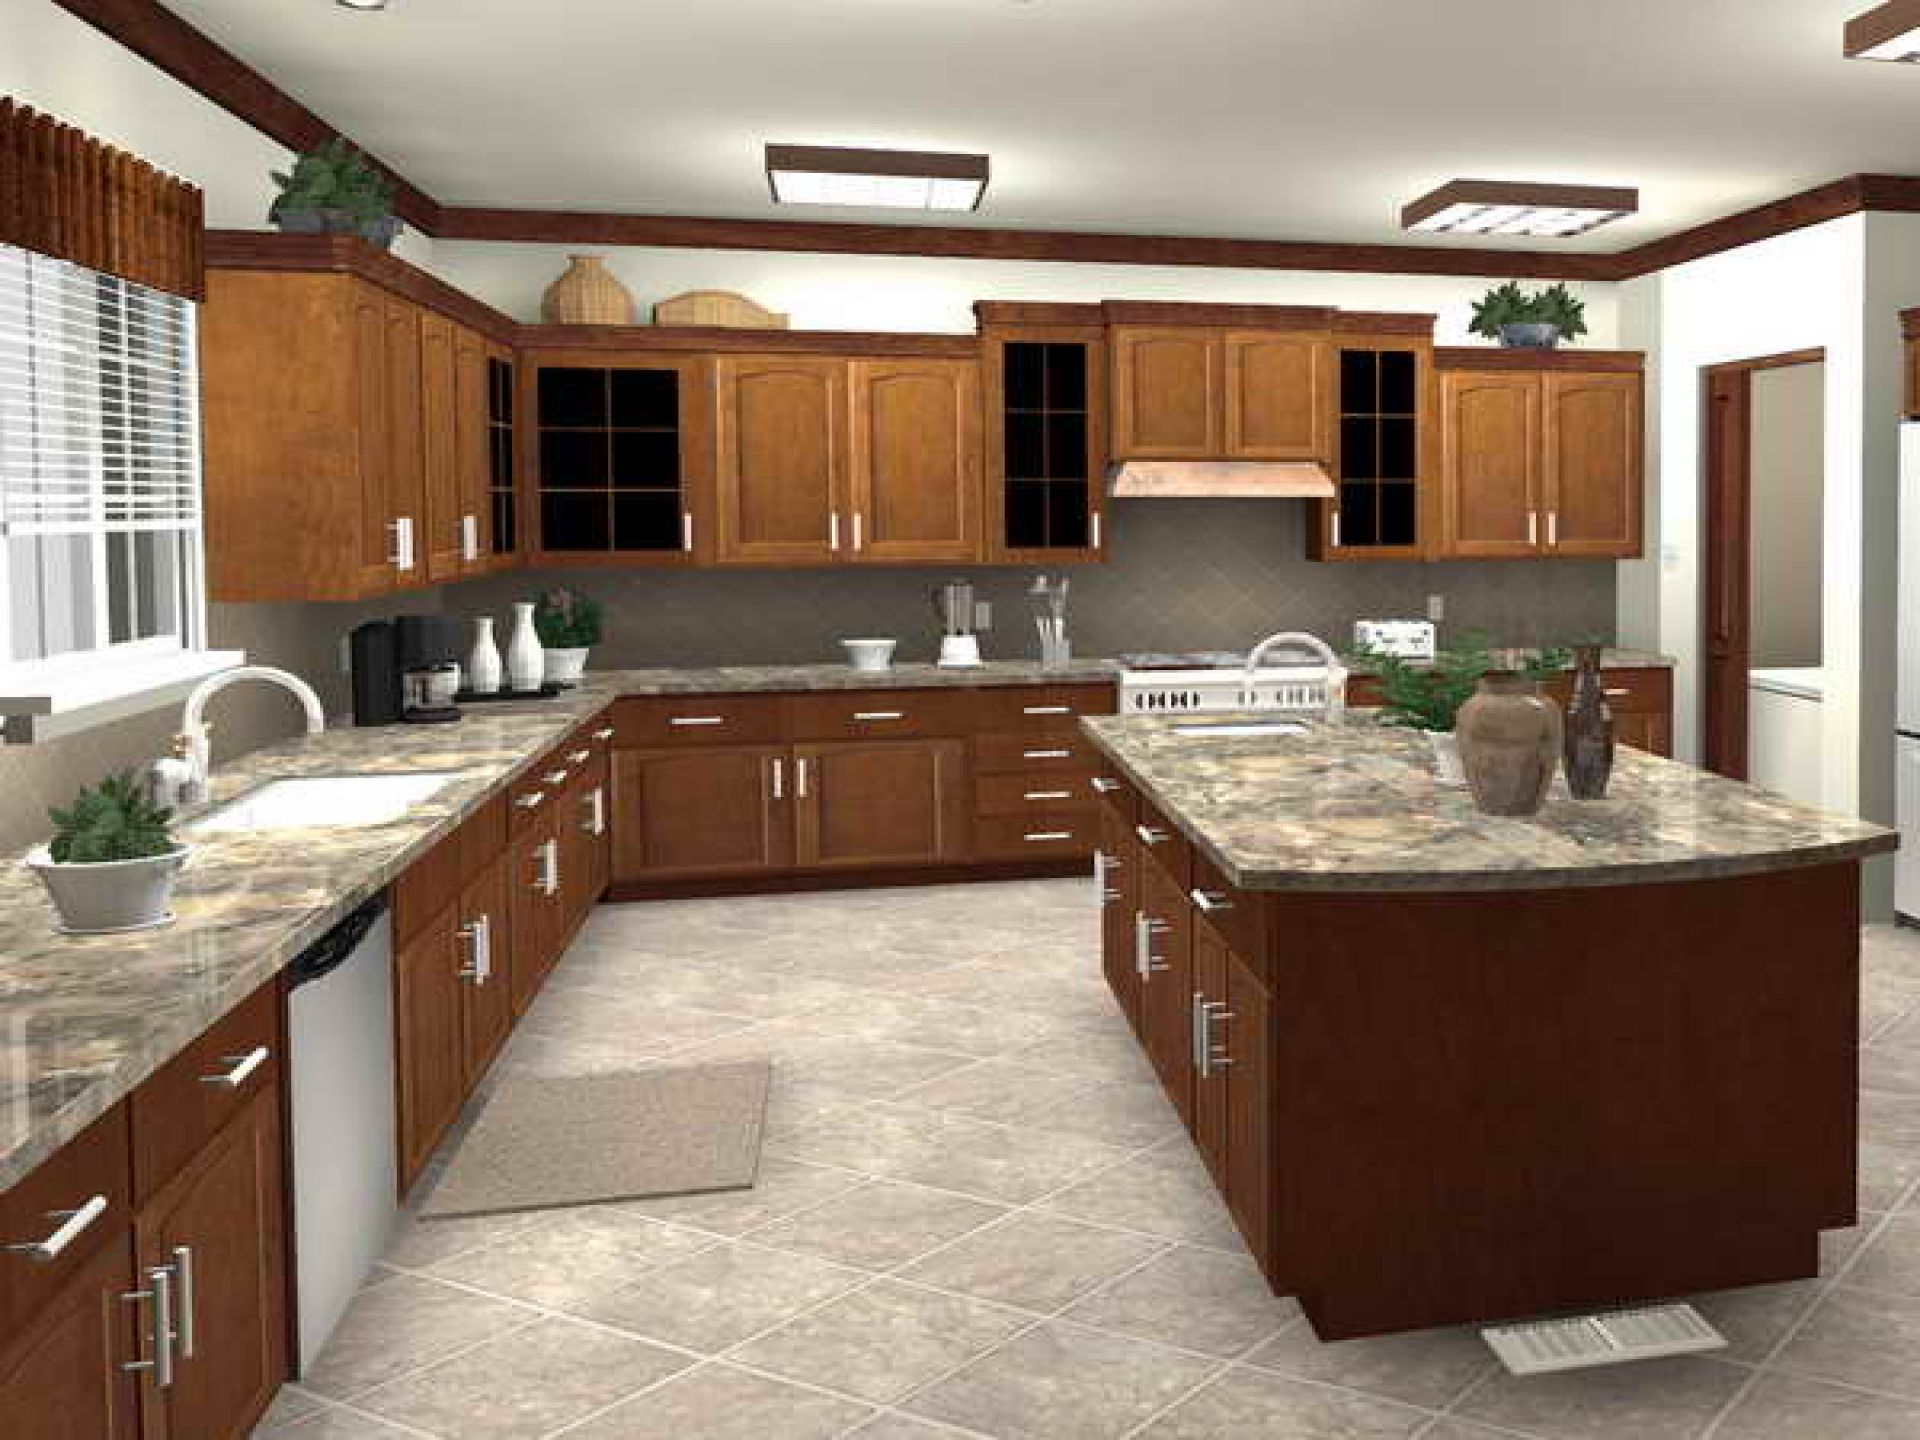 Effective Kitchen Floor Plan with L Shaped Cabinets with Island Connected to Other Rooms